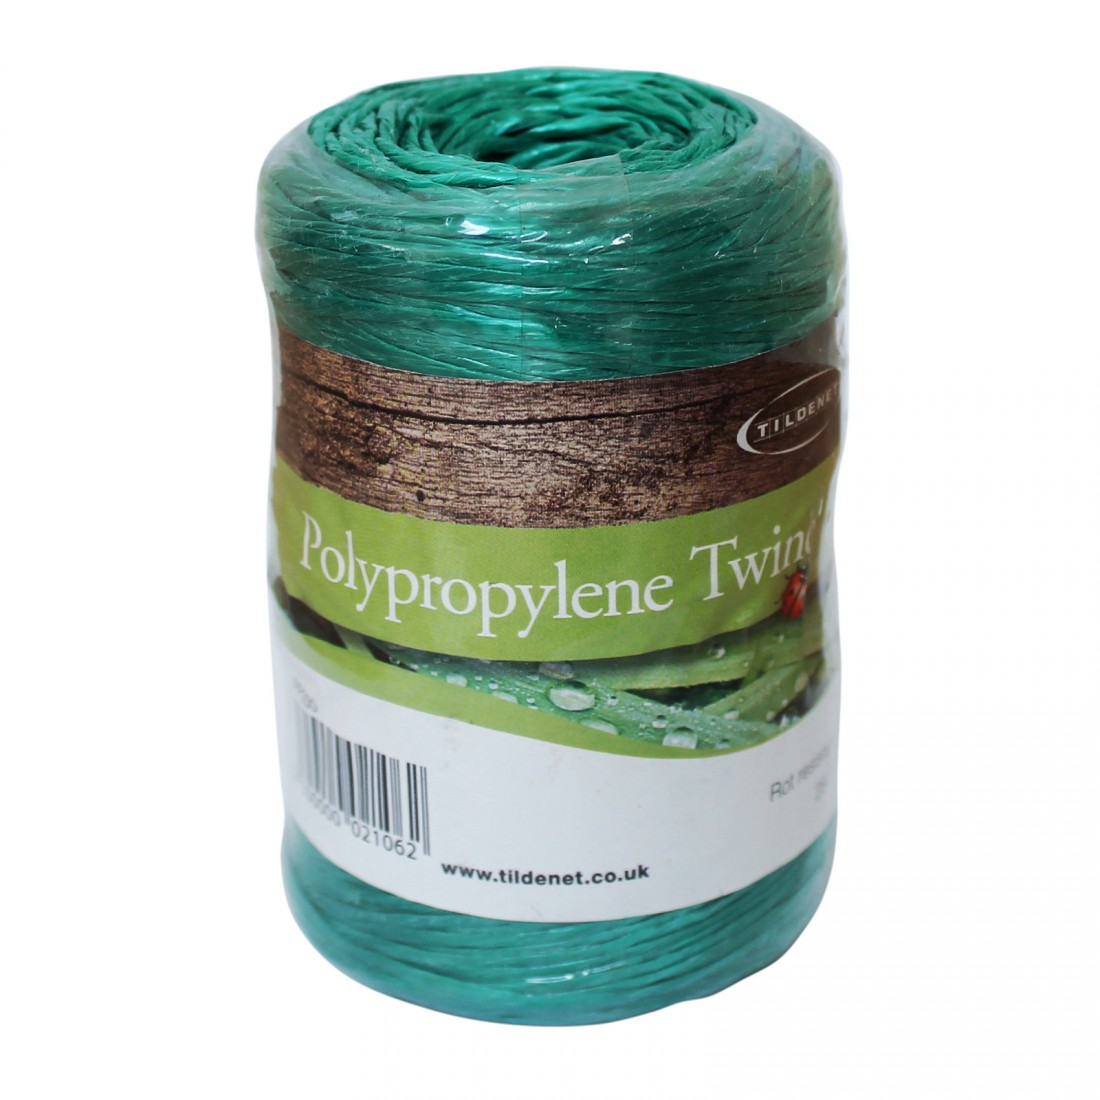 Green Polypropylene Garden Twine String - 200 grams